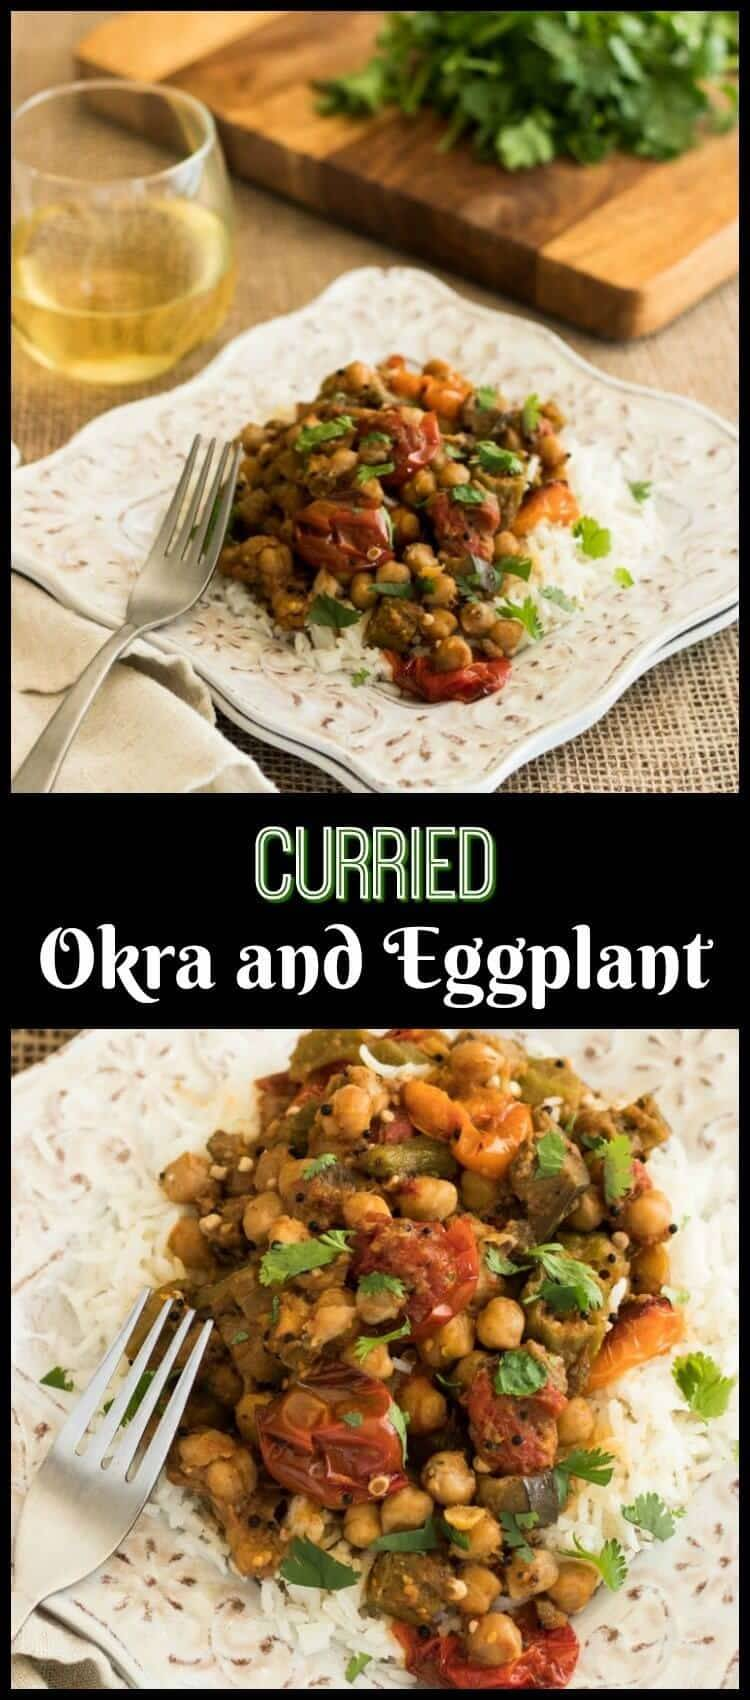 Curried Okra and Eggplant  - Warm Indian spices give farm-fresh vegetables an exotic flavor in this quick and healthy dish! Curried Okra and Eggplant incorporates approachable Indian curry cooking methods with farm-fresh veggies and protein and fiber rich chick peas for a healthy vegetarian meal served with rice or a tasty side dish with grilled fish or chicken... Vegetarian recipes | Side Dish recipes | Curry | Okra | Eggplant